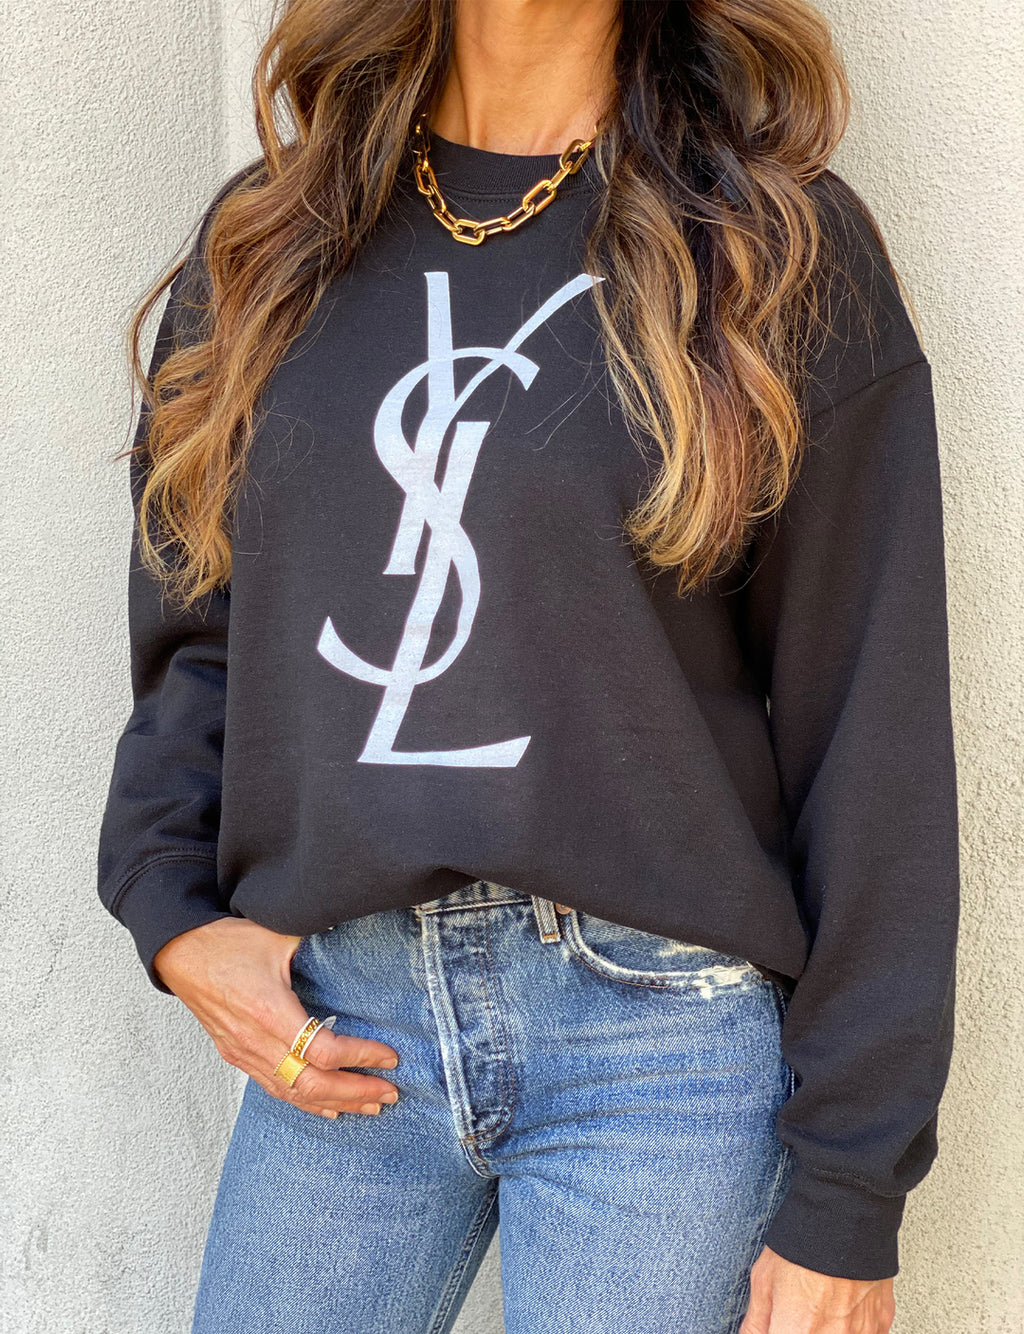 YSL Women's Sweatshirt in Black